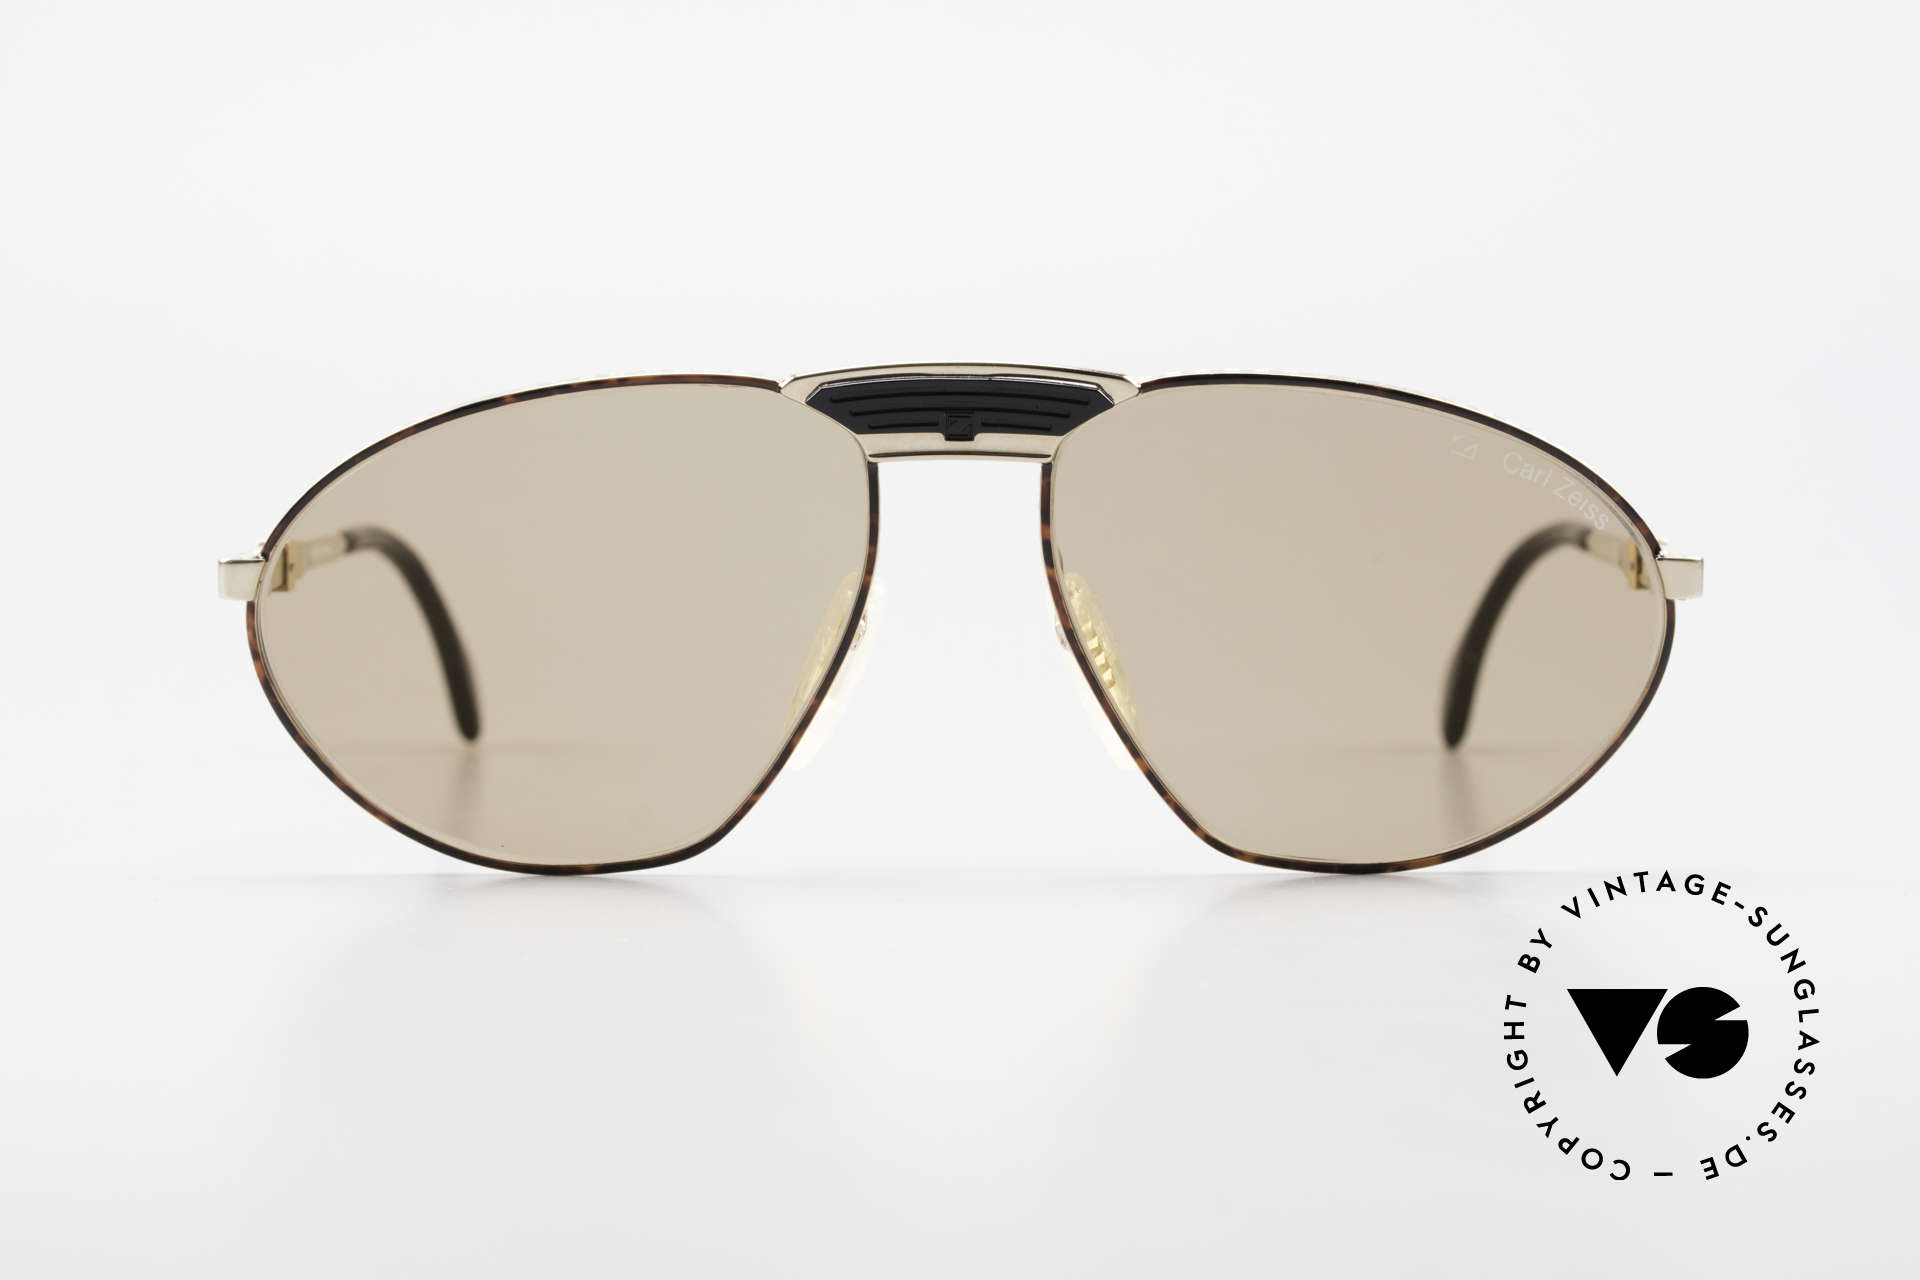 Zeiss 9927 Old 80's Top Quality Shades, original 80's men's sunglasses by Zeiss, West Germany, Made for Men